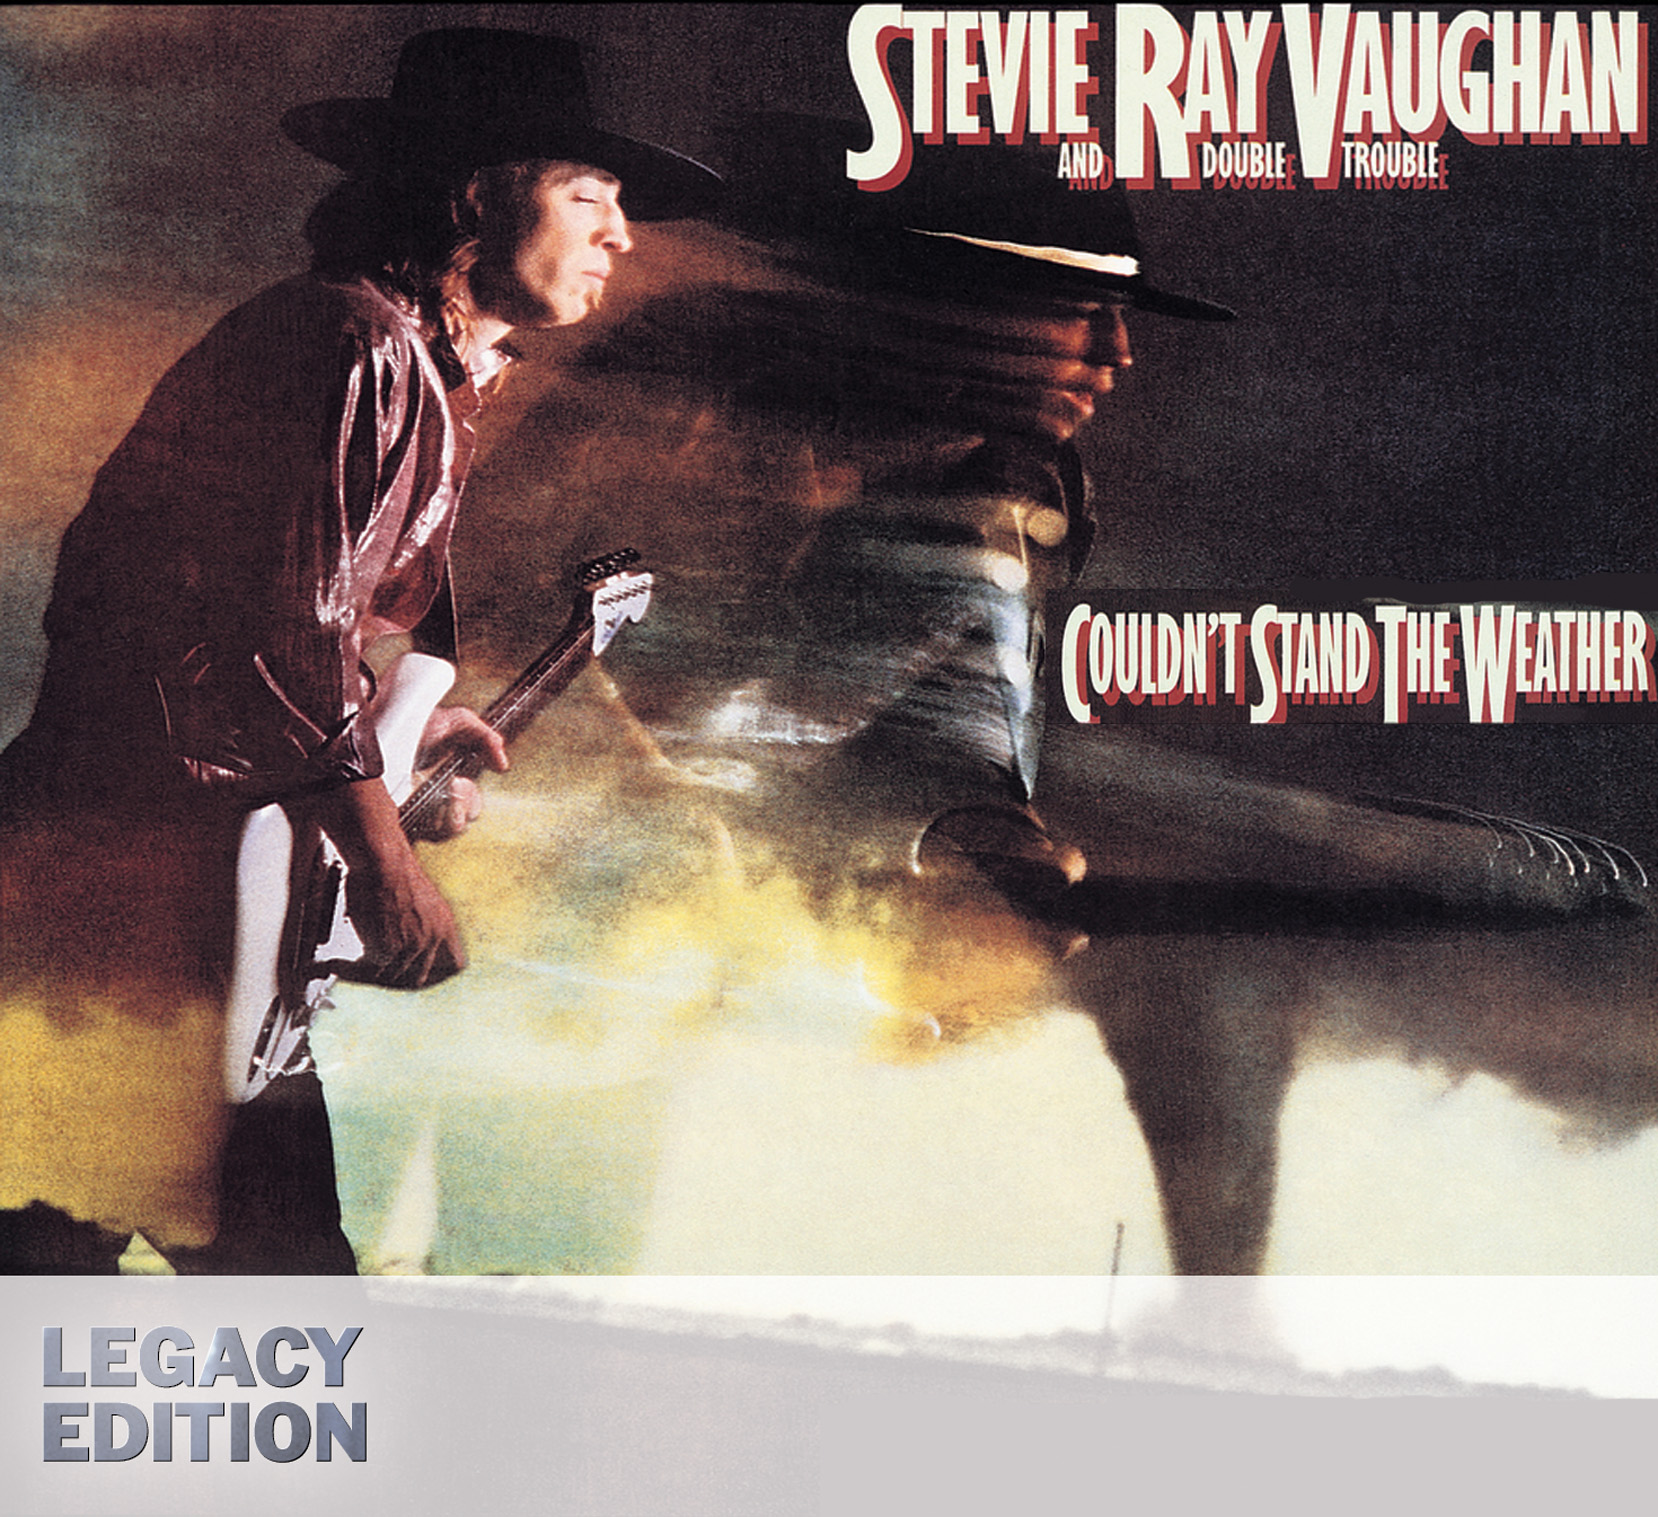 SRV-Coulnt-Stand-The-Weather-LE-COVER.jpg